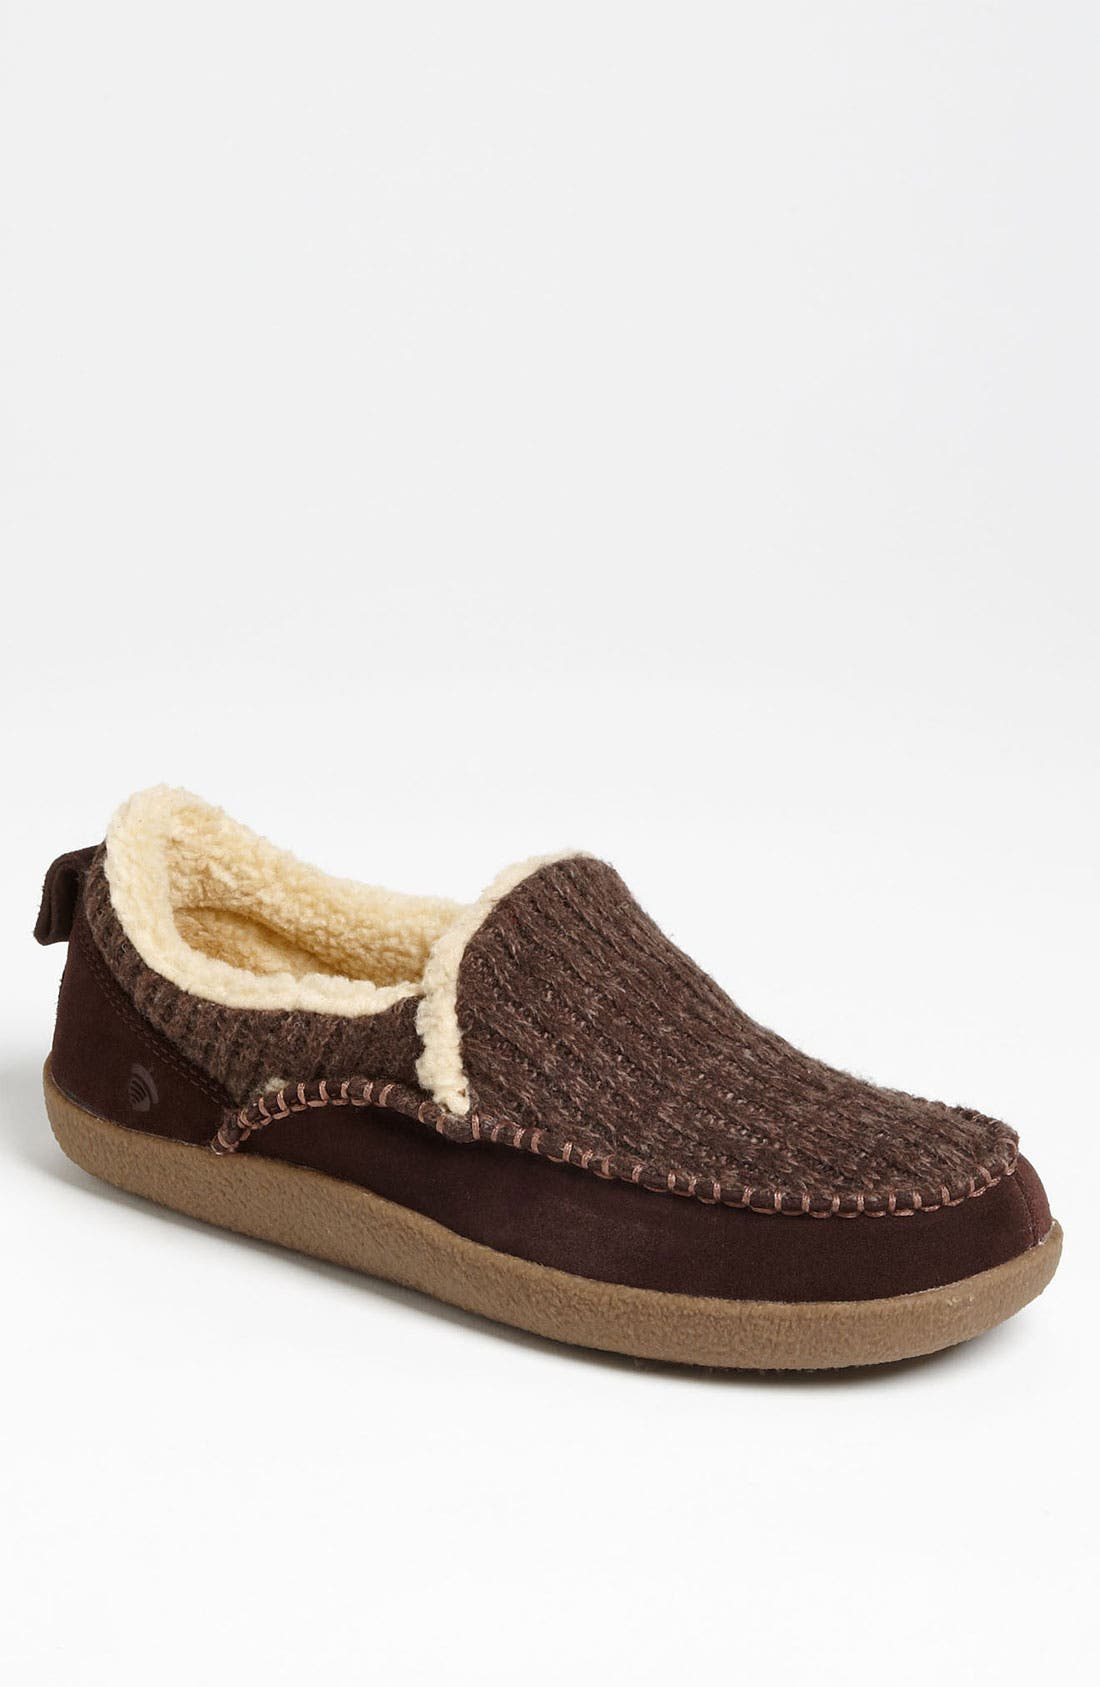 Main Image - Acorn 'Crosslander' Slipper (Men)